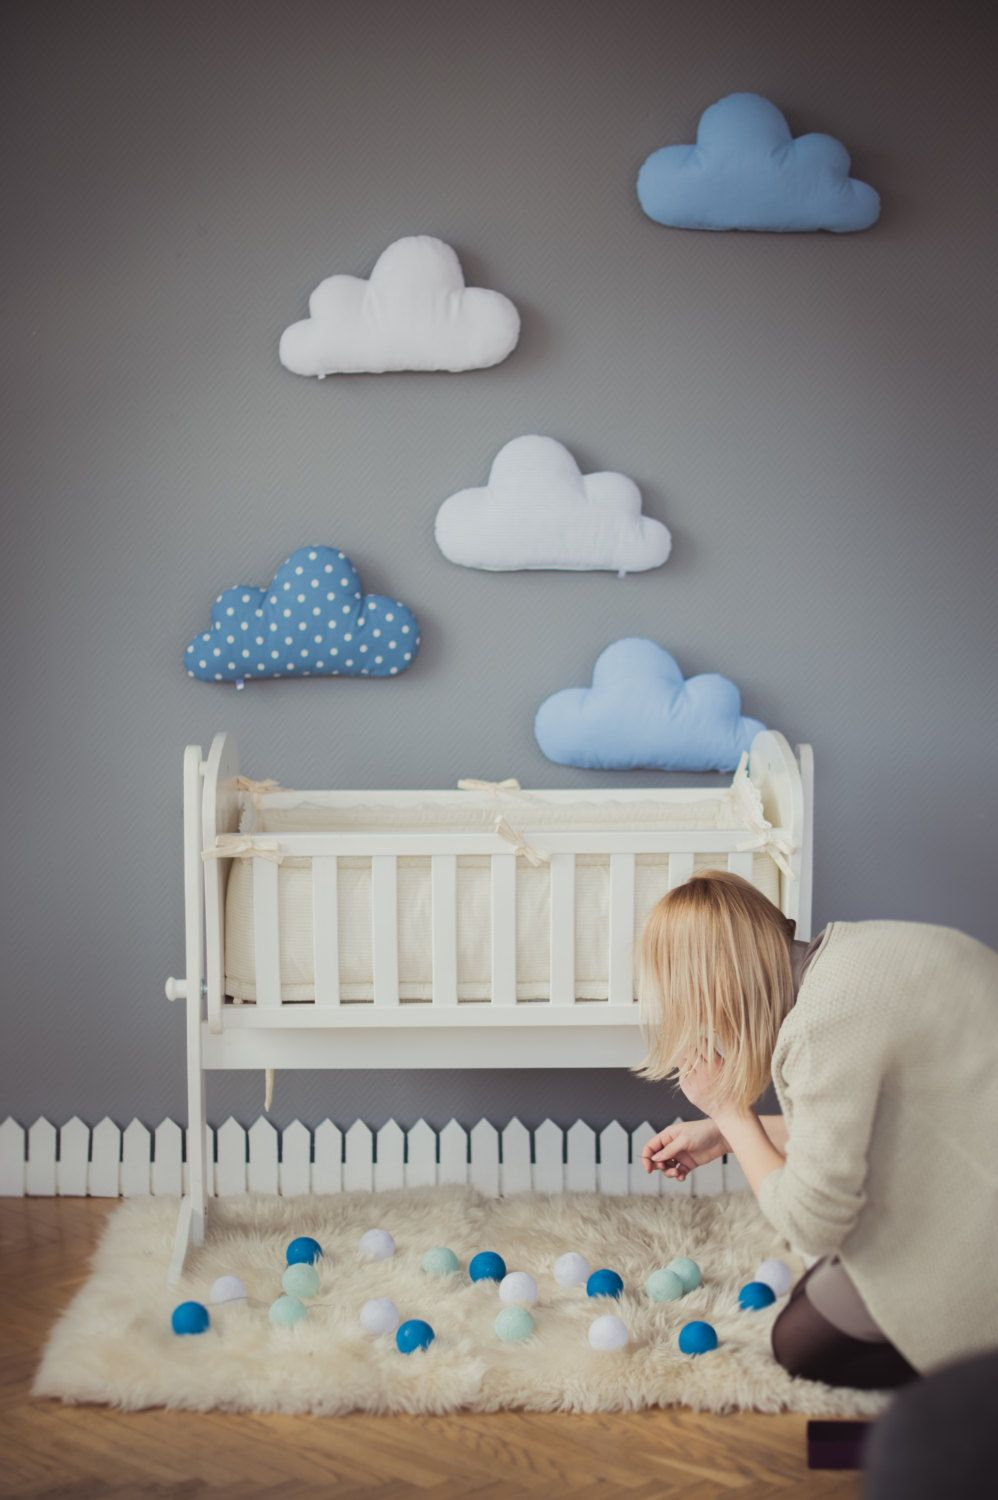 Baby Boy Room Mural Ideas: Kids Stuffed Cloud Shaped Pillow